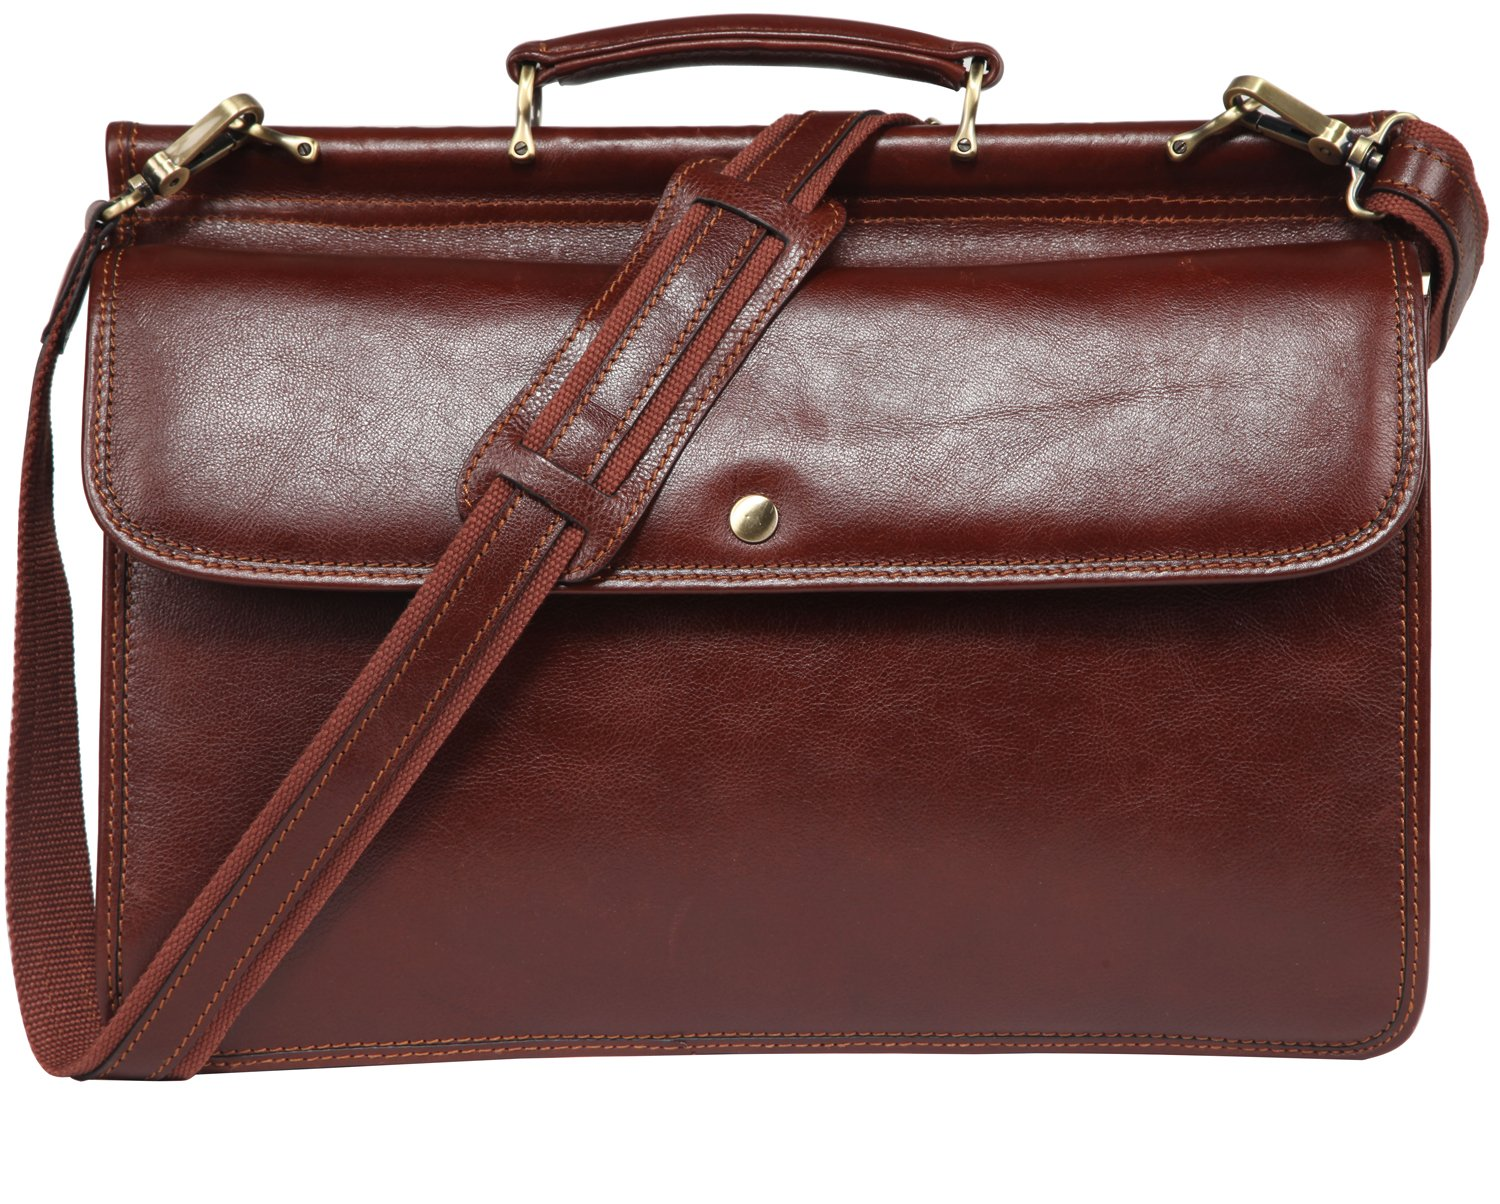 Banuce Mens Italian Leather Flapover Briefcase Tote 2way Business Laptop Messenger Bag Attache Case by Banuce (Image #2)